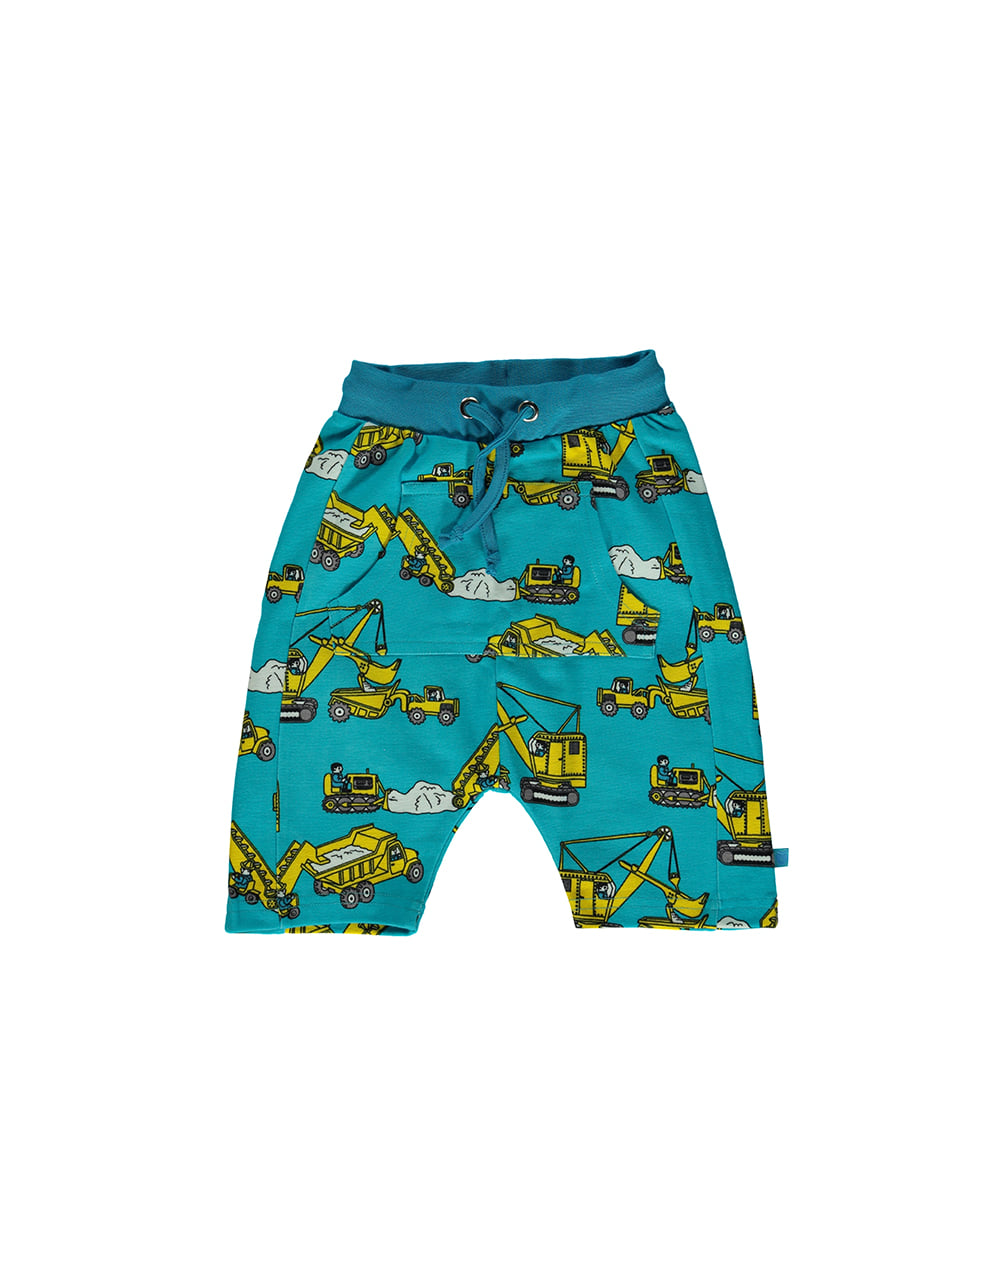 SMAFOLK Shorts with Machines  Blue Atoll